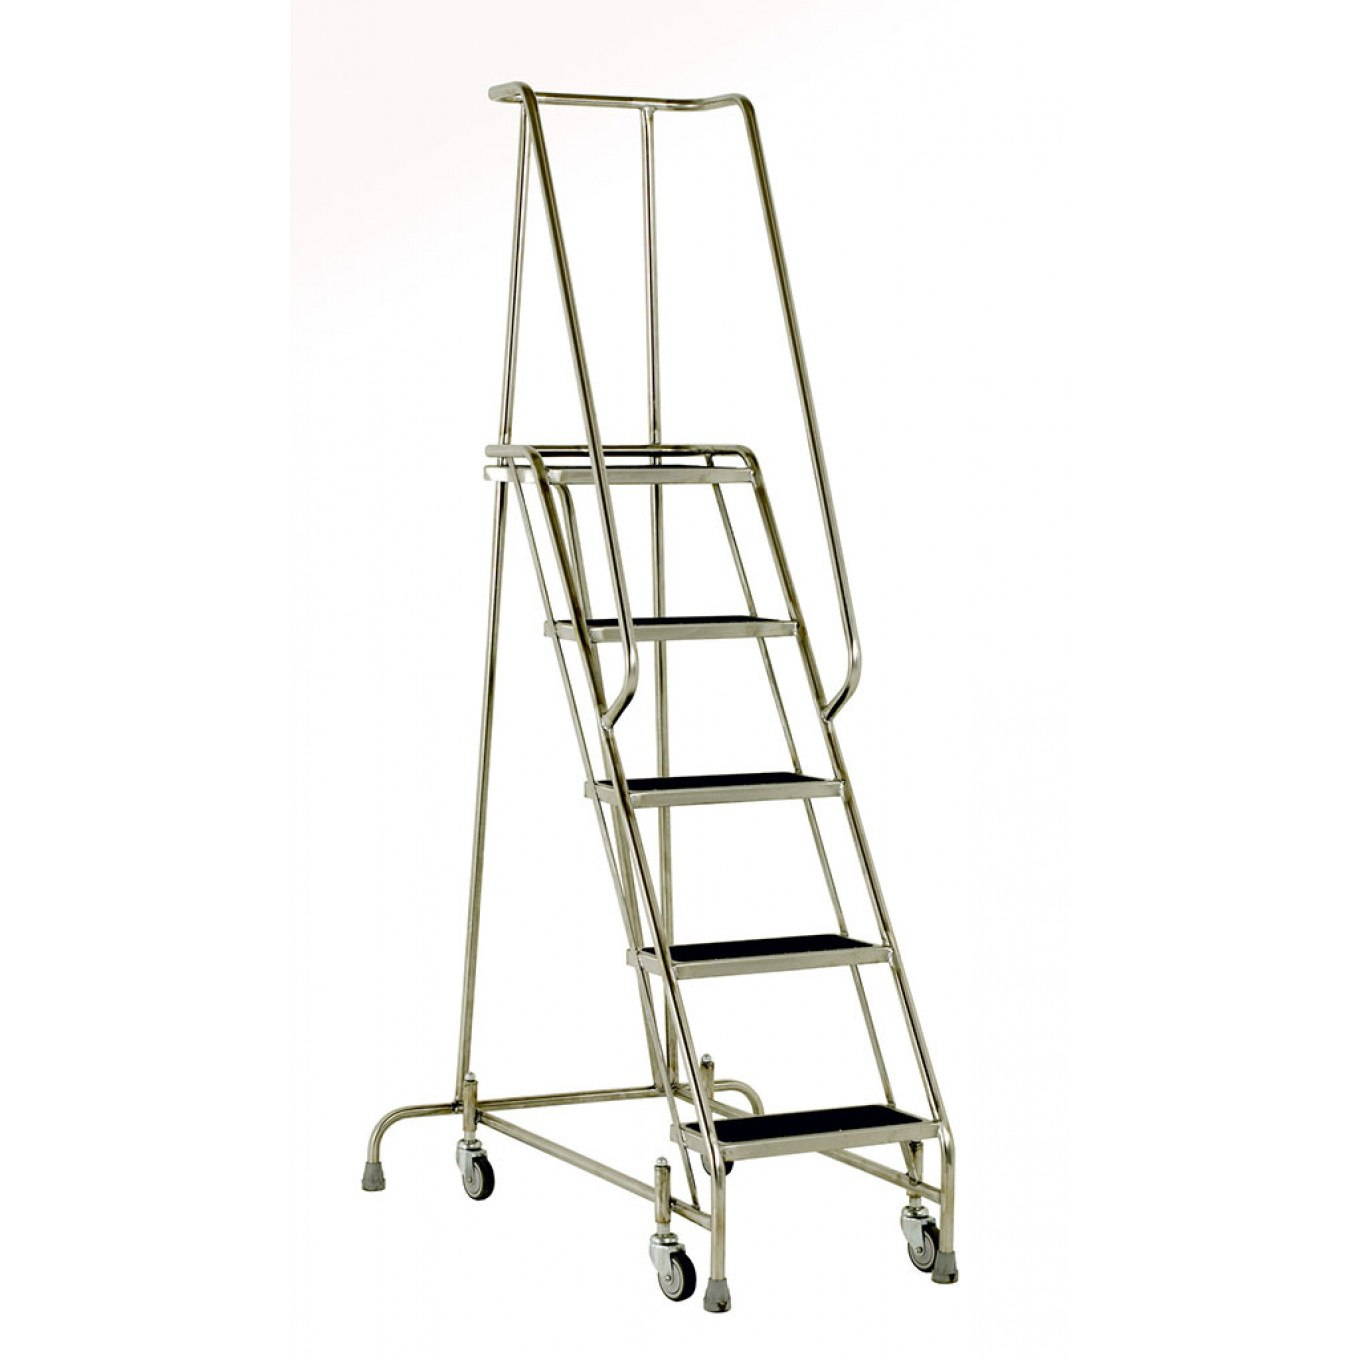 Steptek Stainless Steel Mobile Steps   Warehouse Mobile Safety Steps    Warehouse Steps   Ladders Ladderstore.com